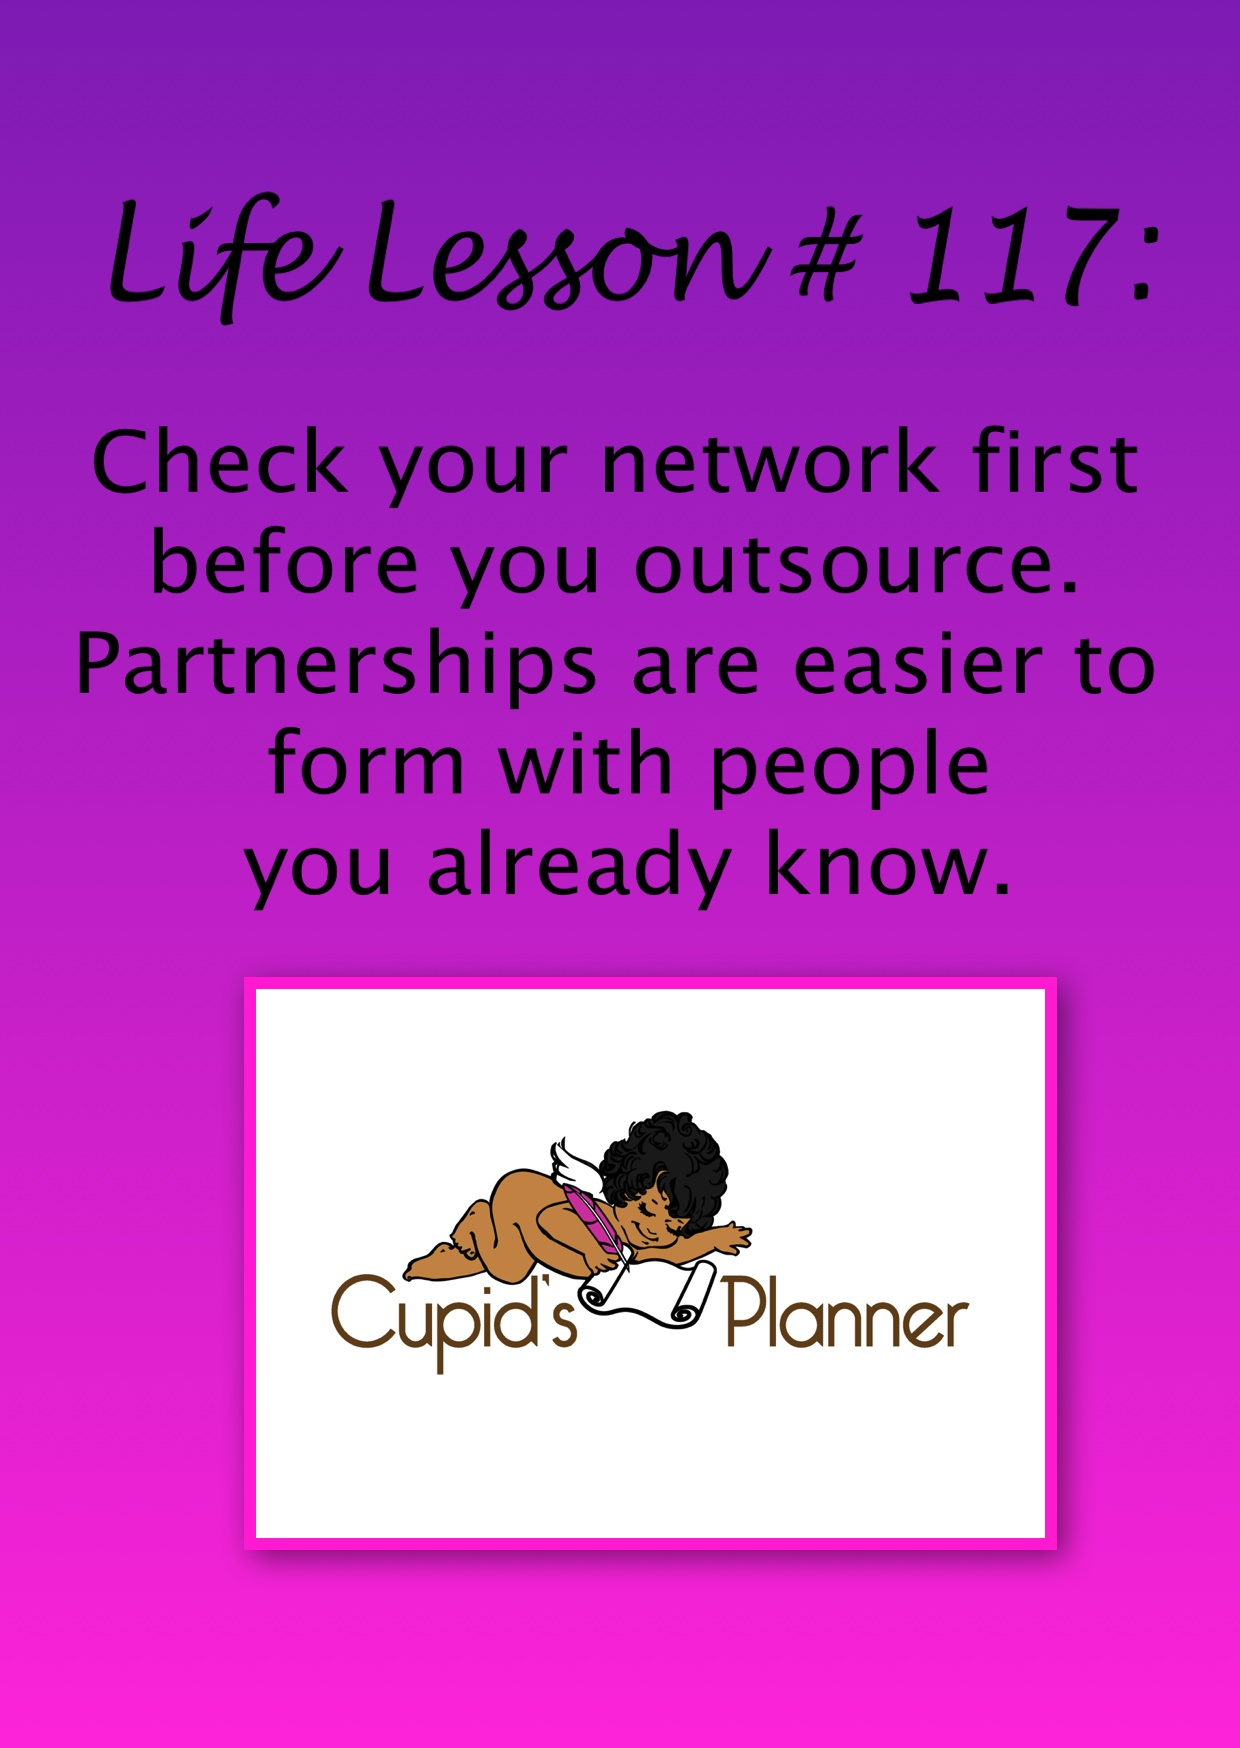 Life Lesson forming partnerships